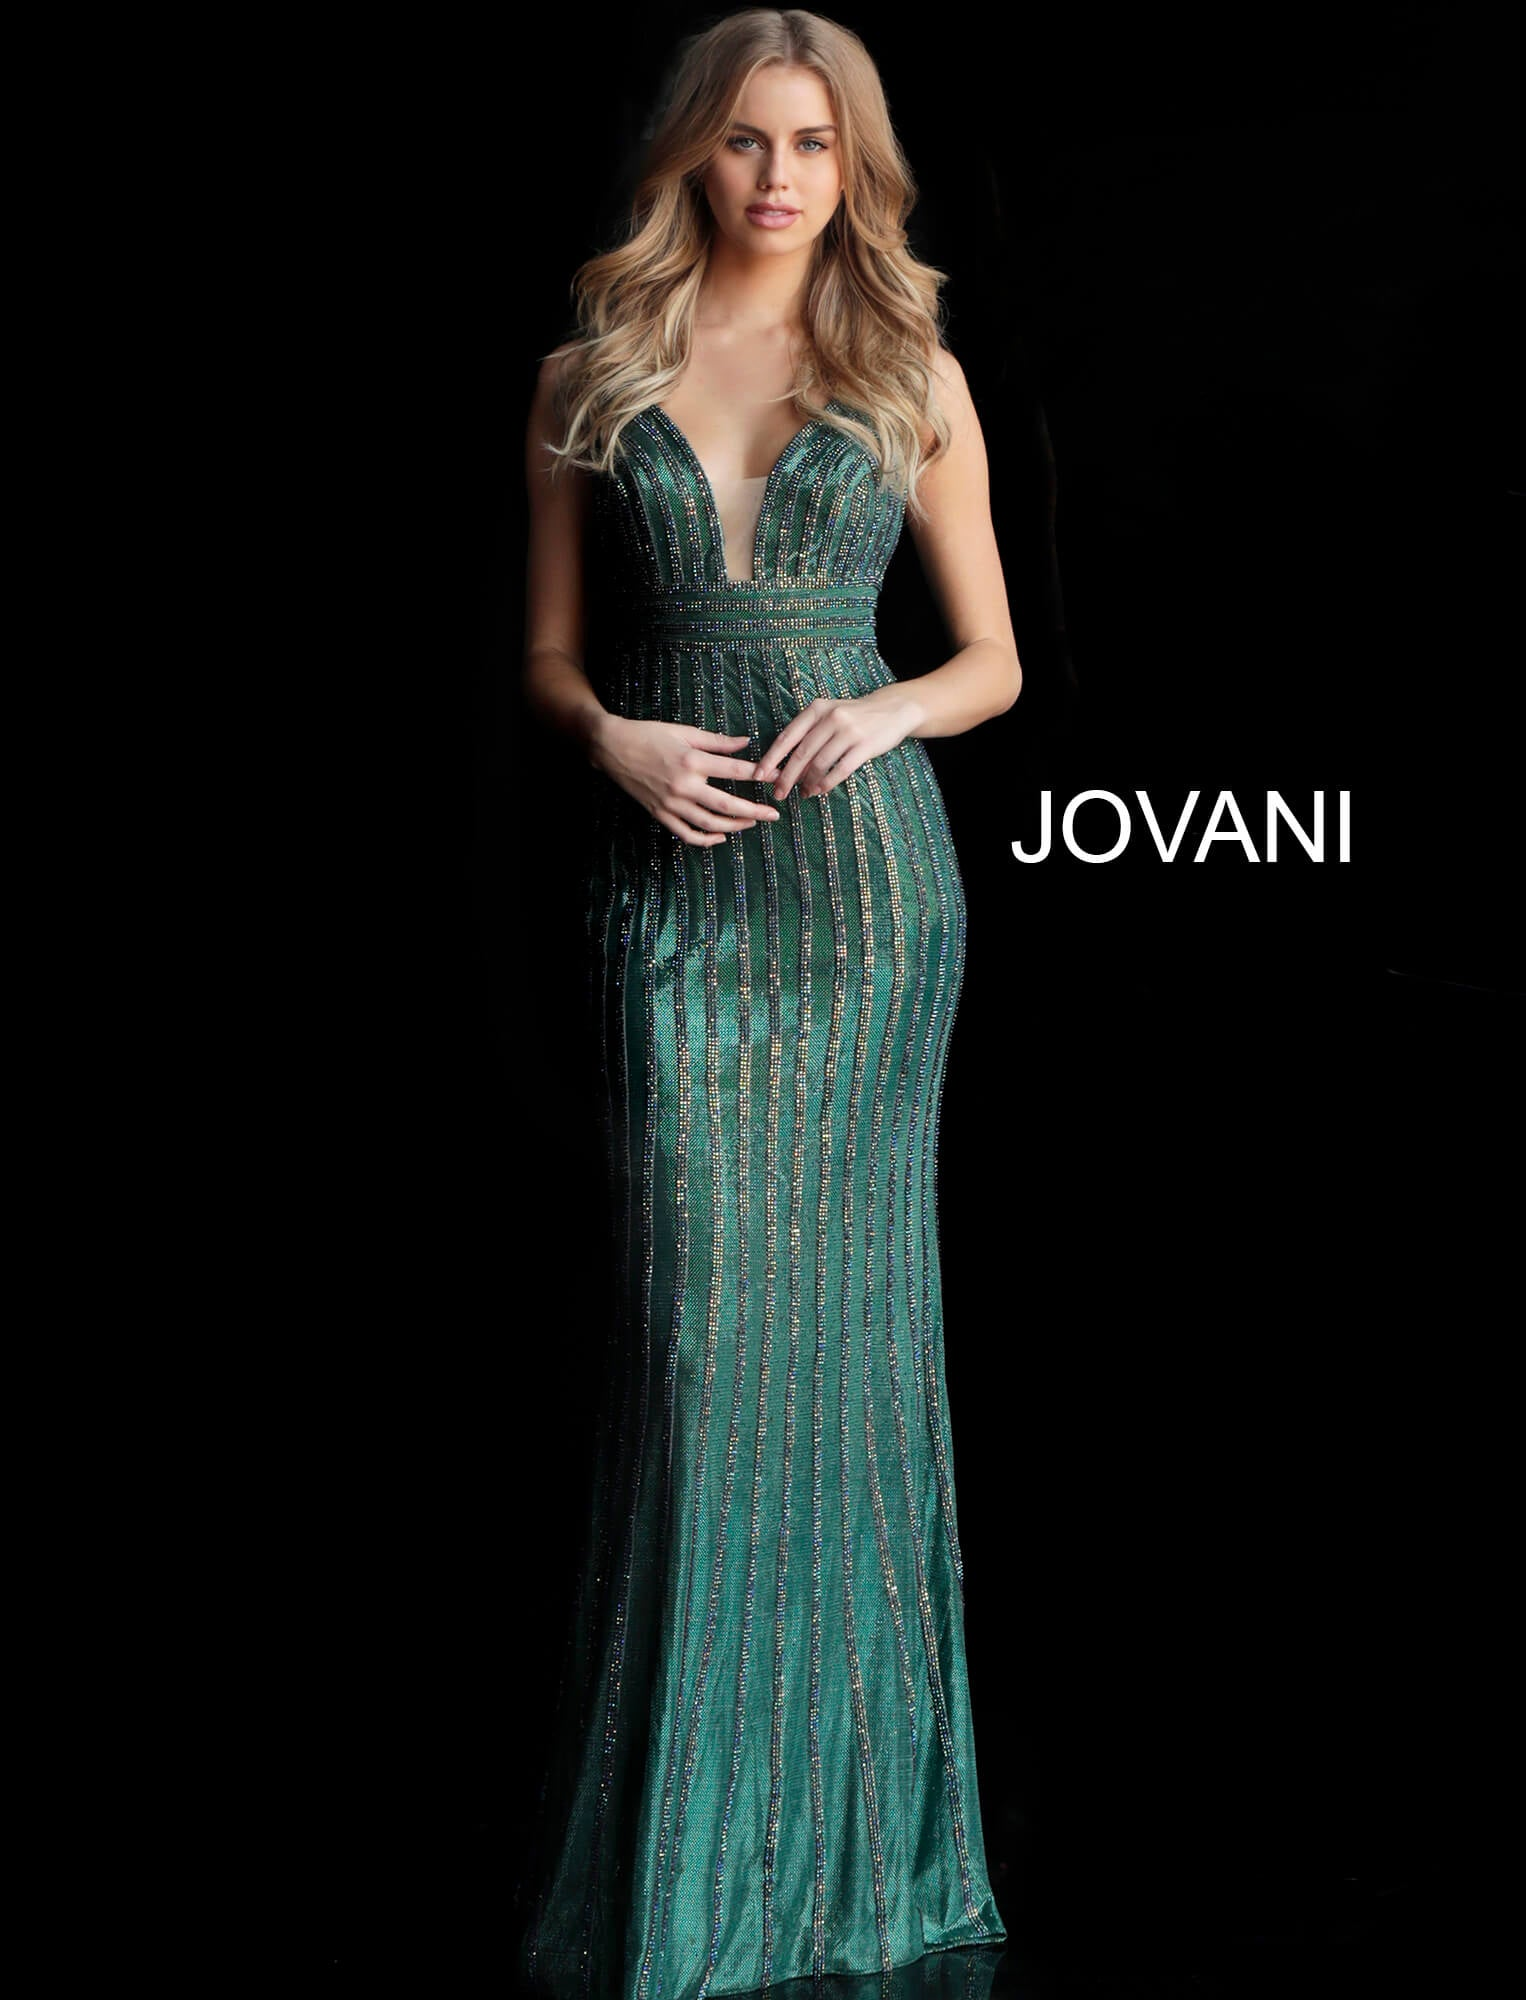 Jovani Green Beaded Gown